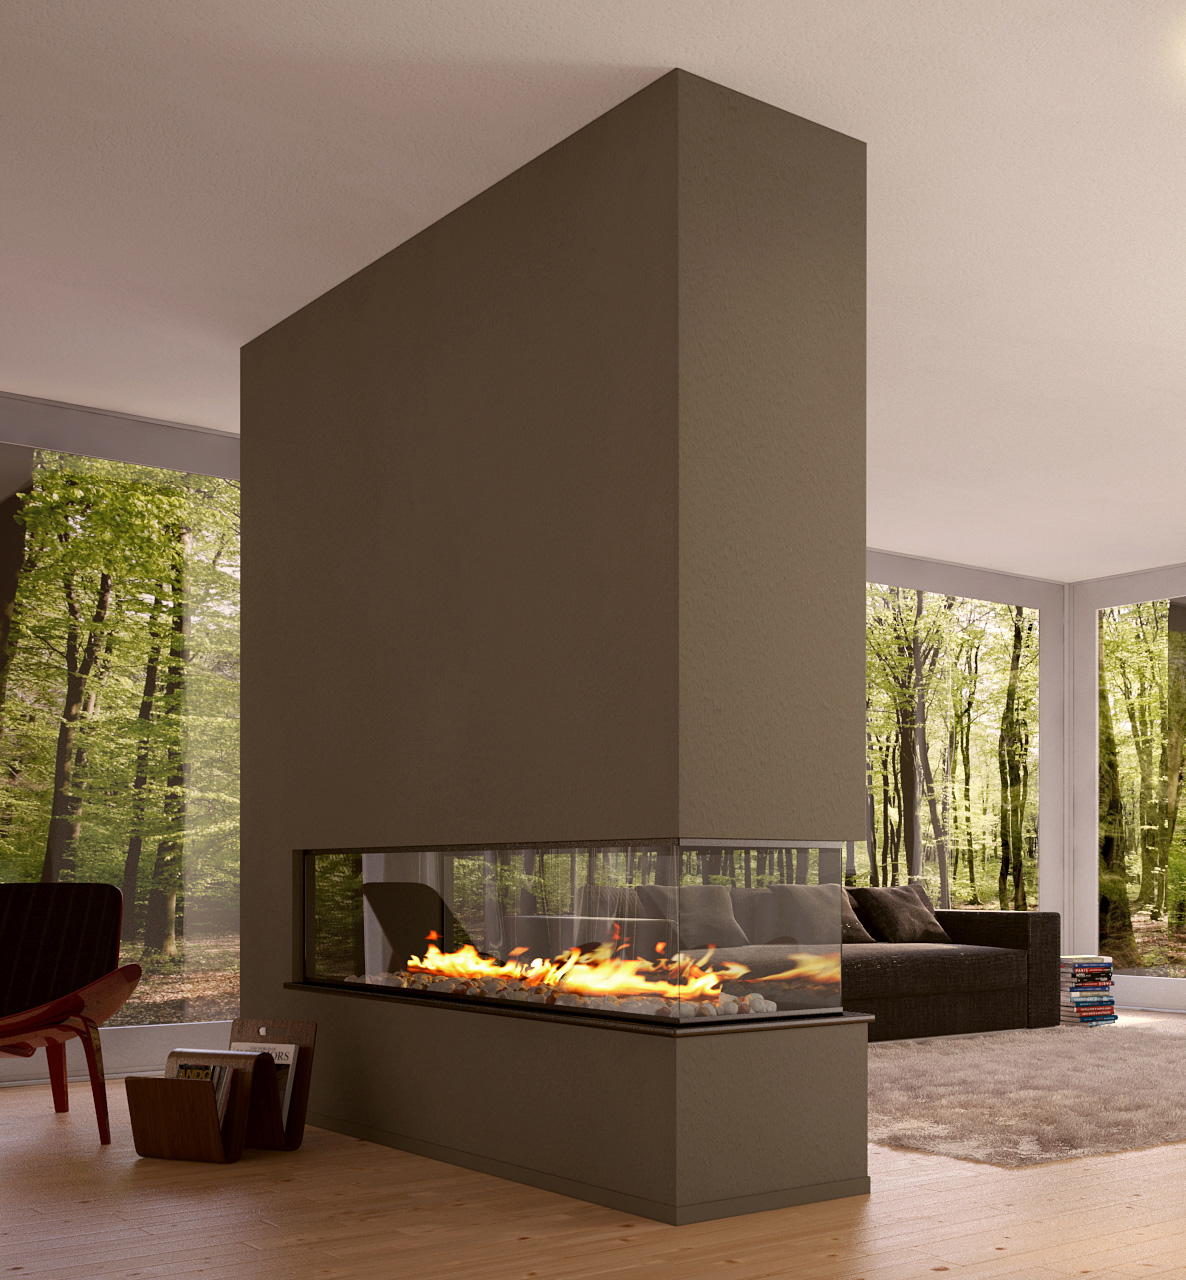 Two Sided Fireplace Warms Spacious Interior Effortless ...